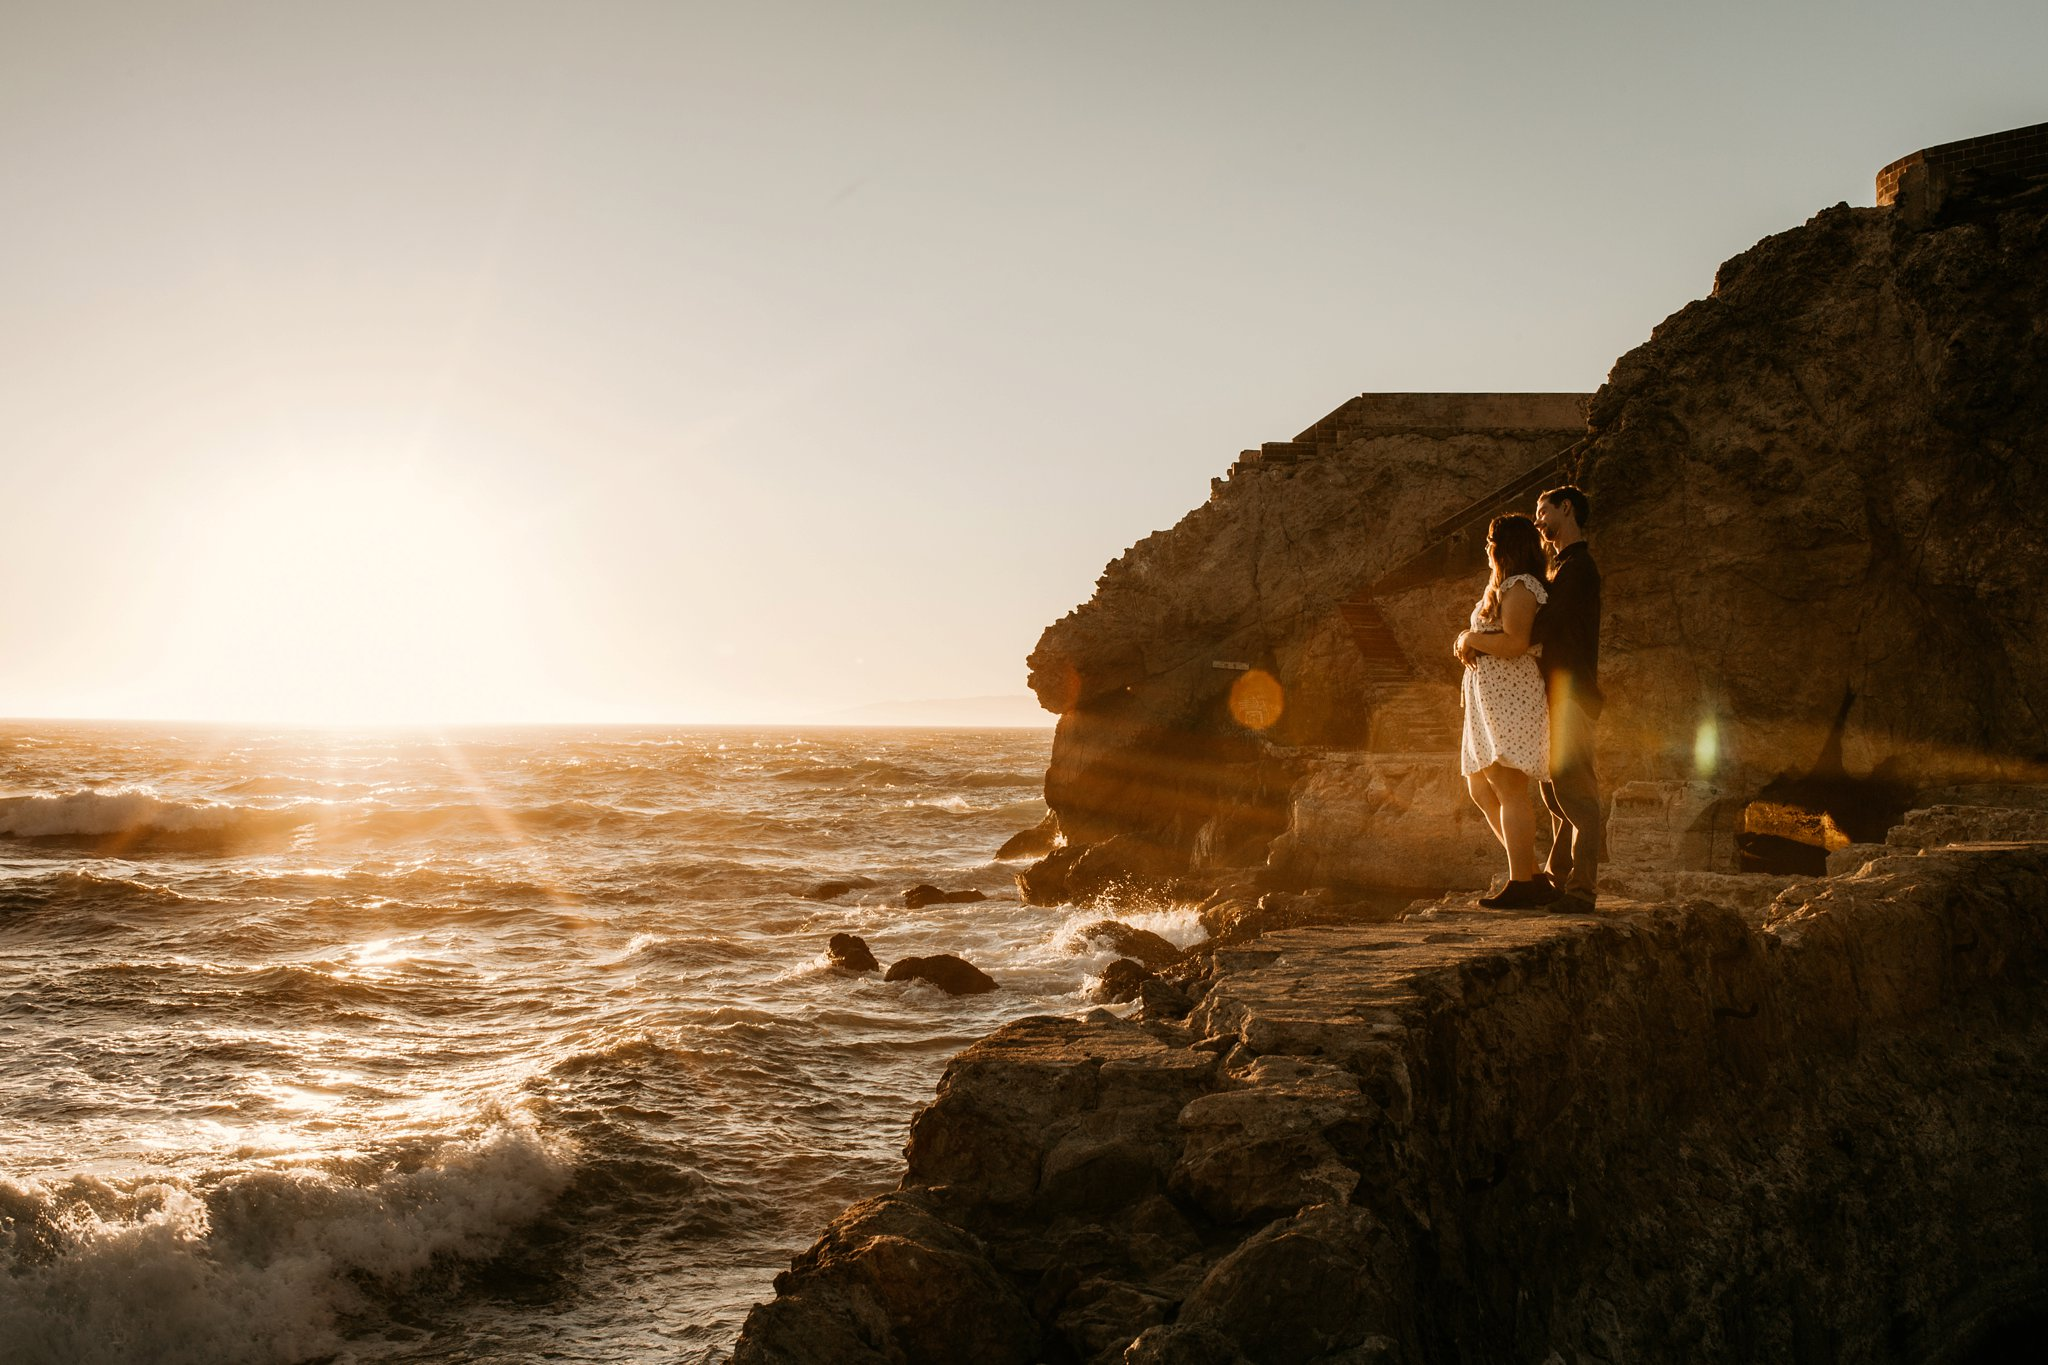 180709_engagement_portrait_renee_san_francisco_sutro_baths_california_danielle_alysse_photography_blog_53_WEB.jpg